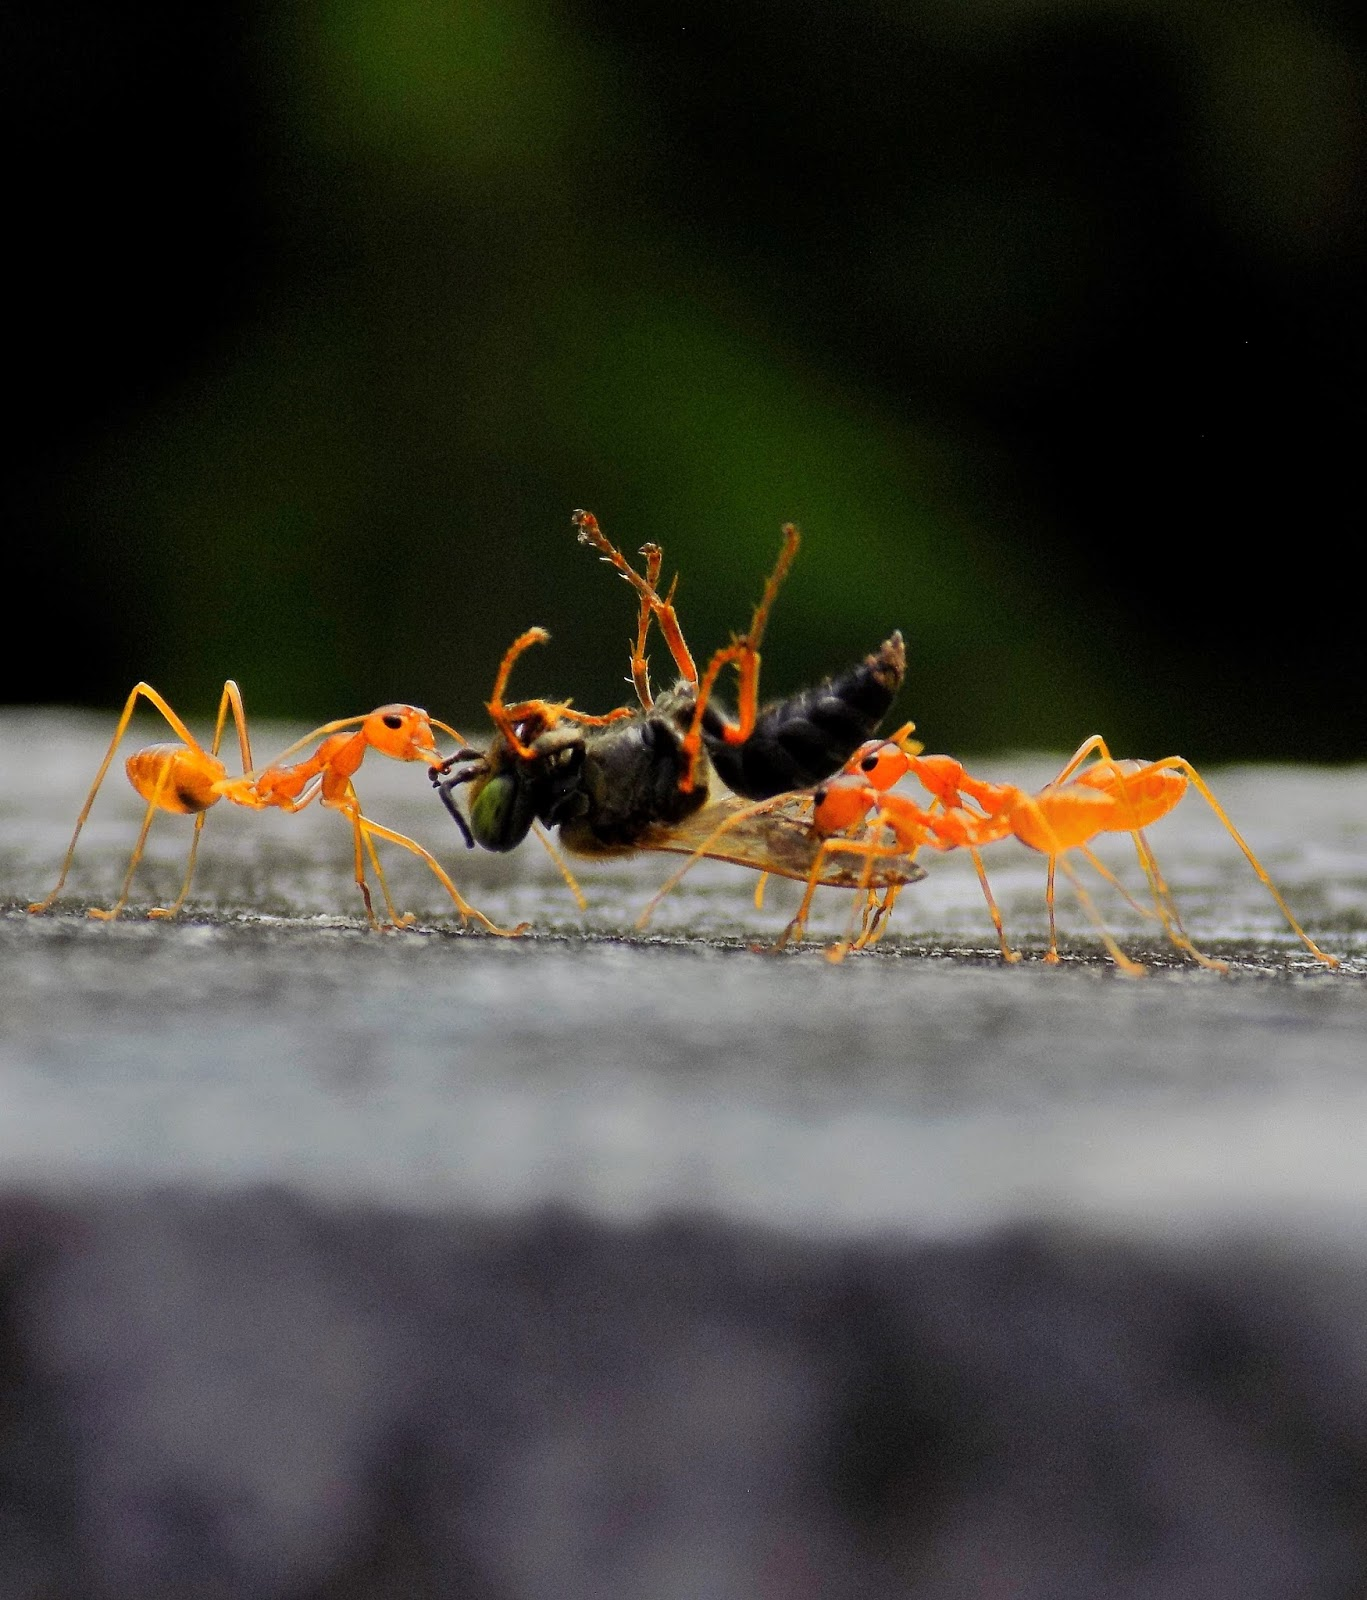 Ants carrying dead insects.